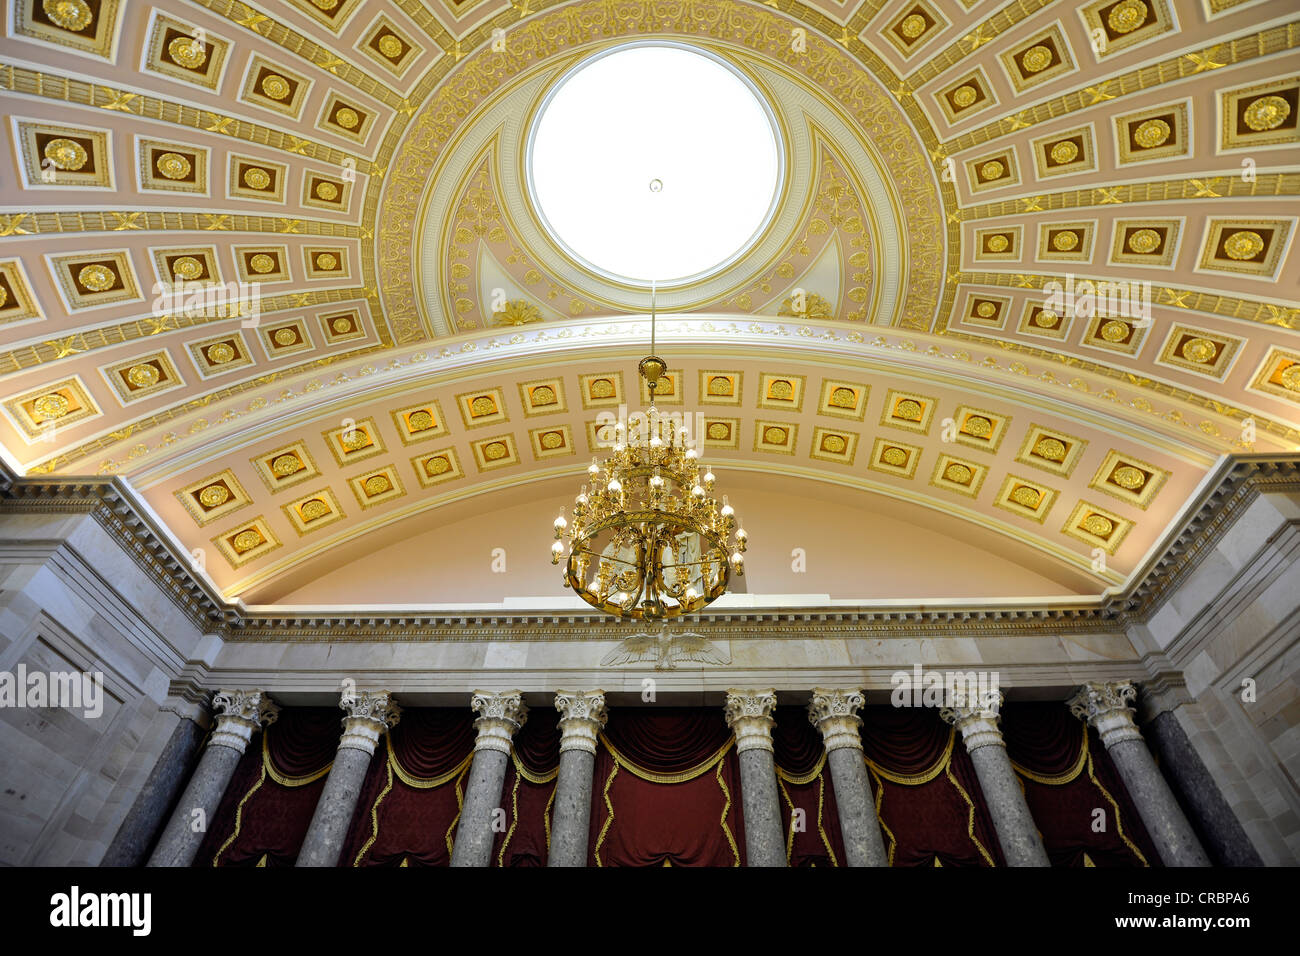 Dome in the National Statuary Hall Collection, United States Capitol, Capitol Hill, Washington DC, District of Columbia - Stock Image